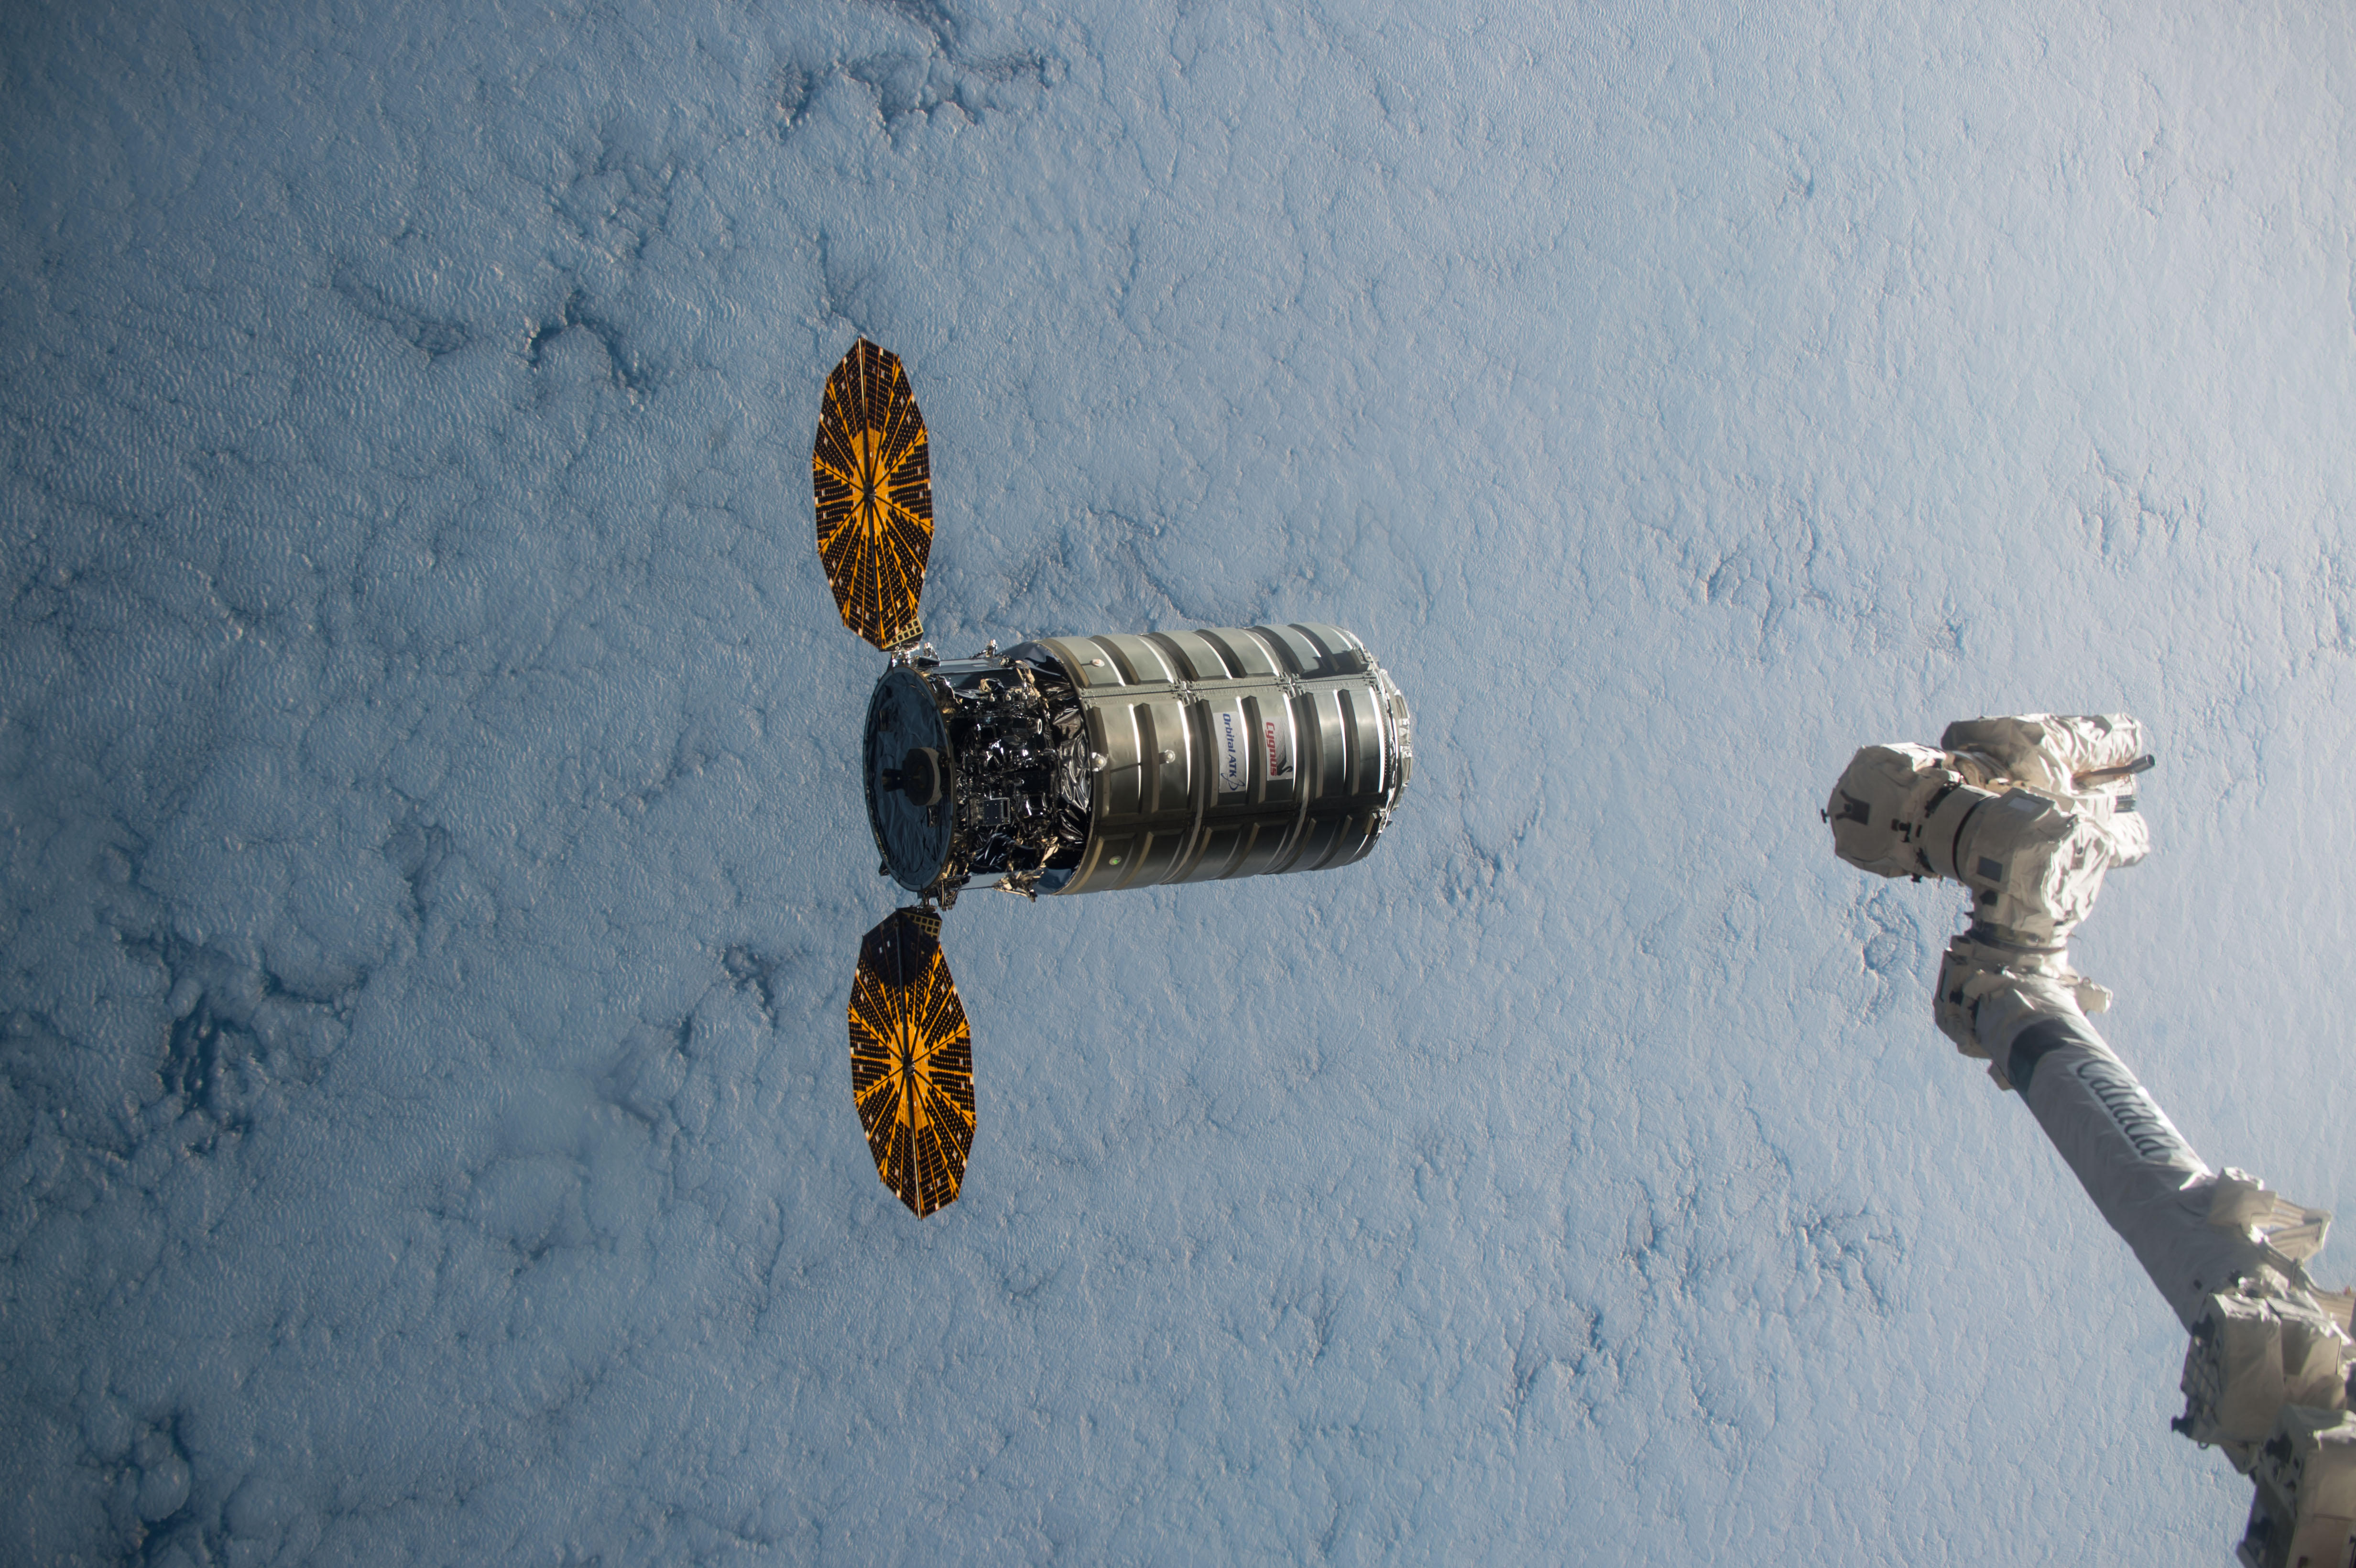 Small solar lights for crafts - Cygnus Spacecraft With Solar Arrays Deployed And Clouds Below Approaching Robotic Arm In Lower Right